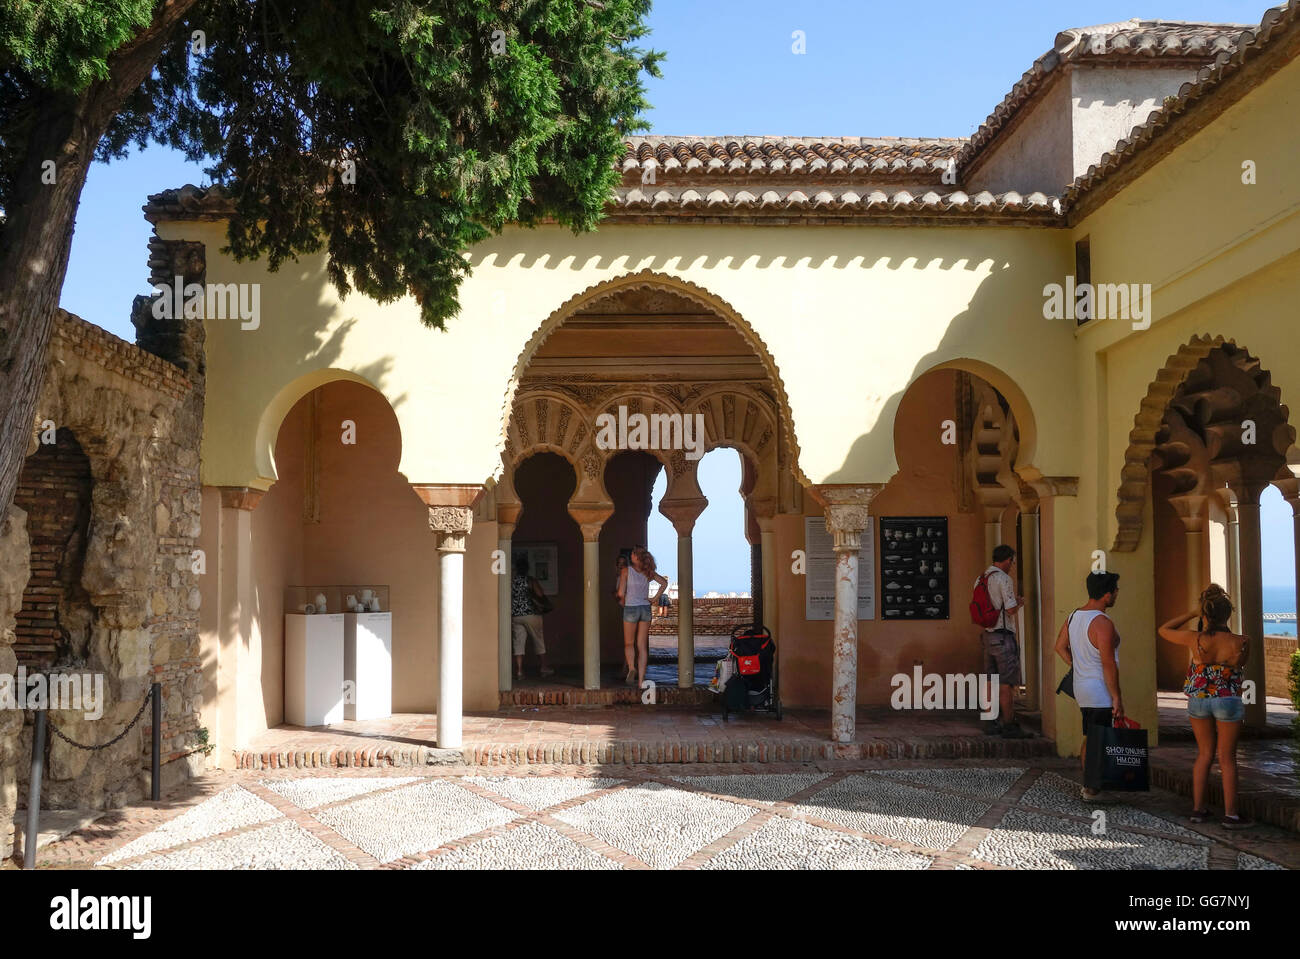 Courtyard Interior with moorish arches  Alcazaba  Malaga  Andalusia     Courtyard Interior with moorish arches  Alcazaba  Malaga  Andalusia  Spain